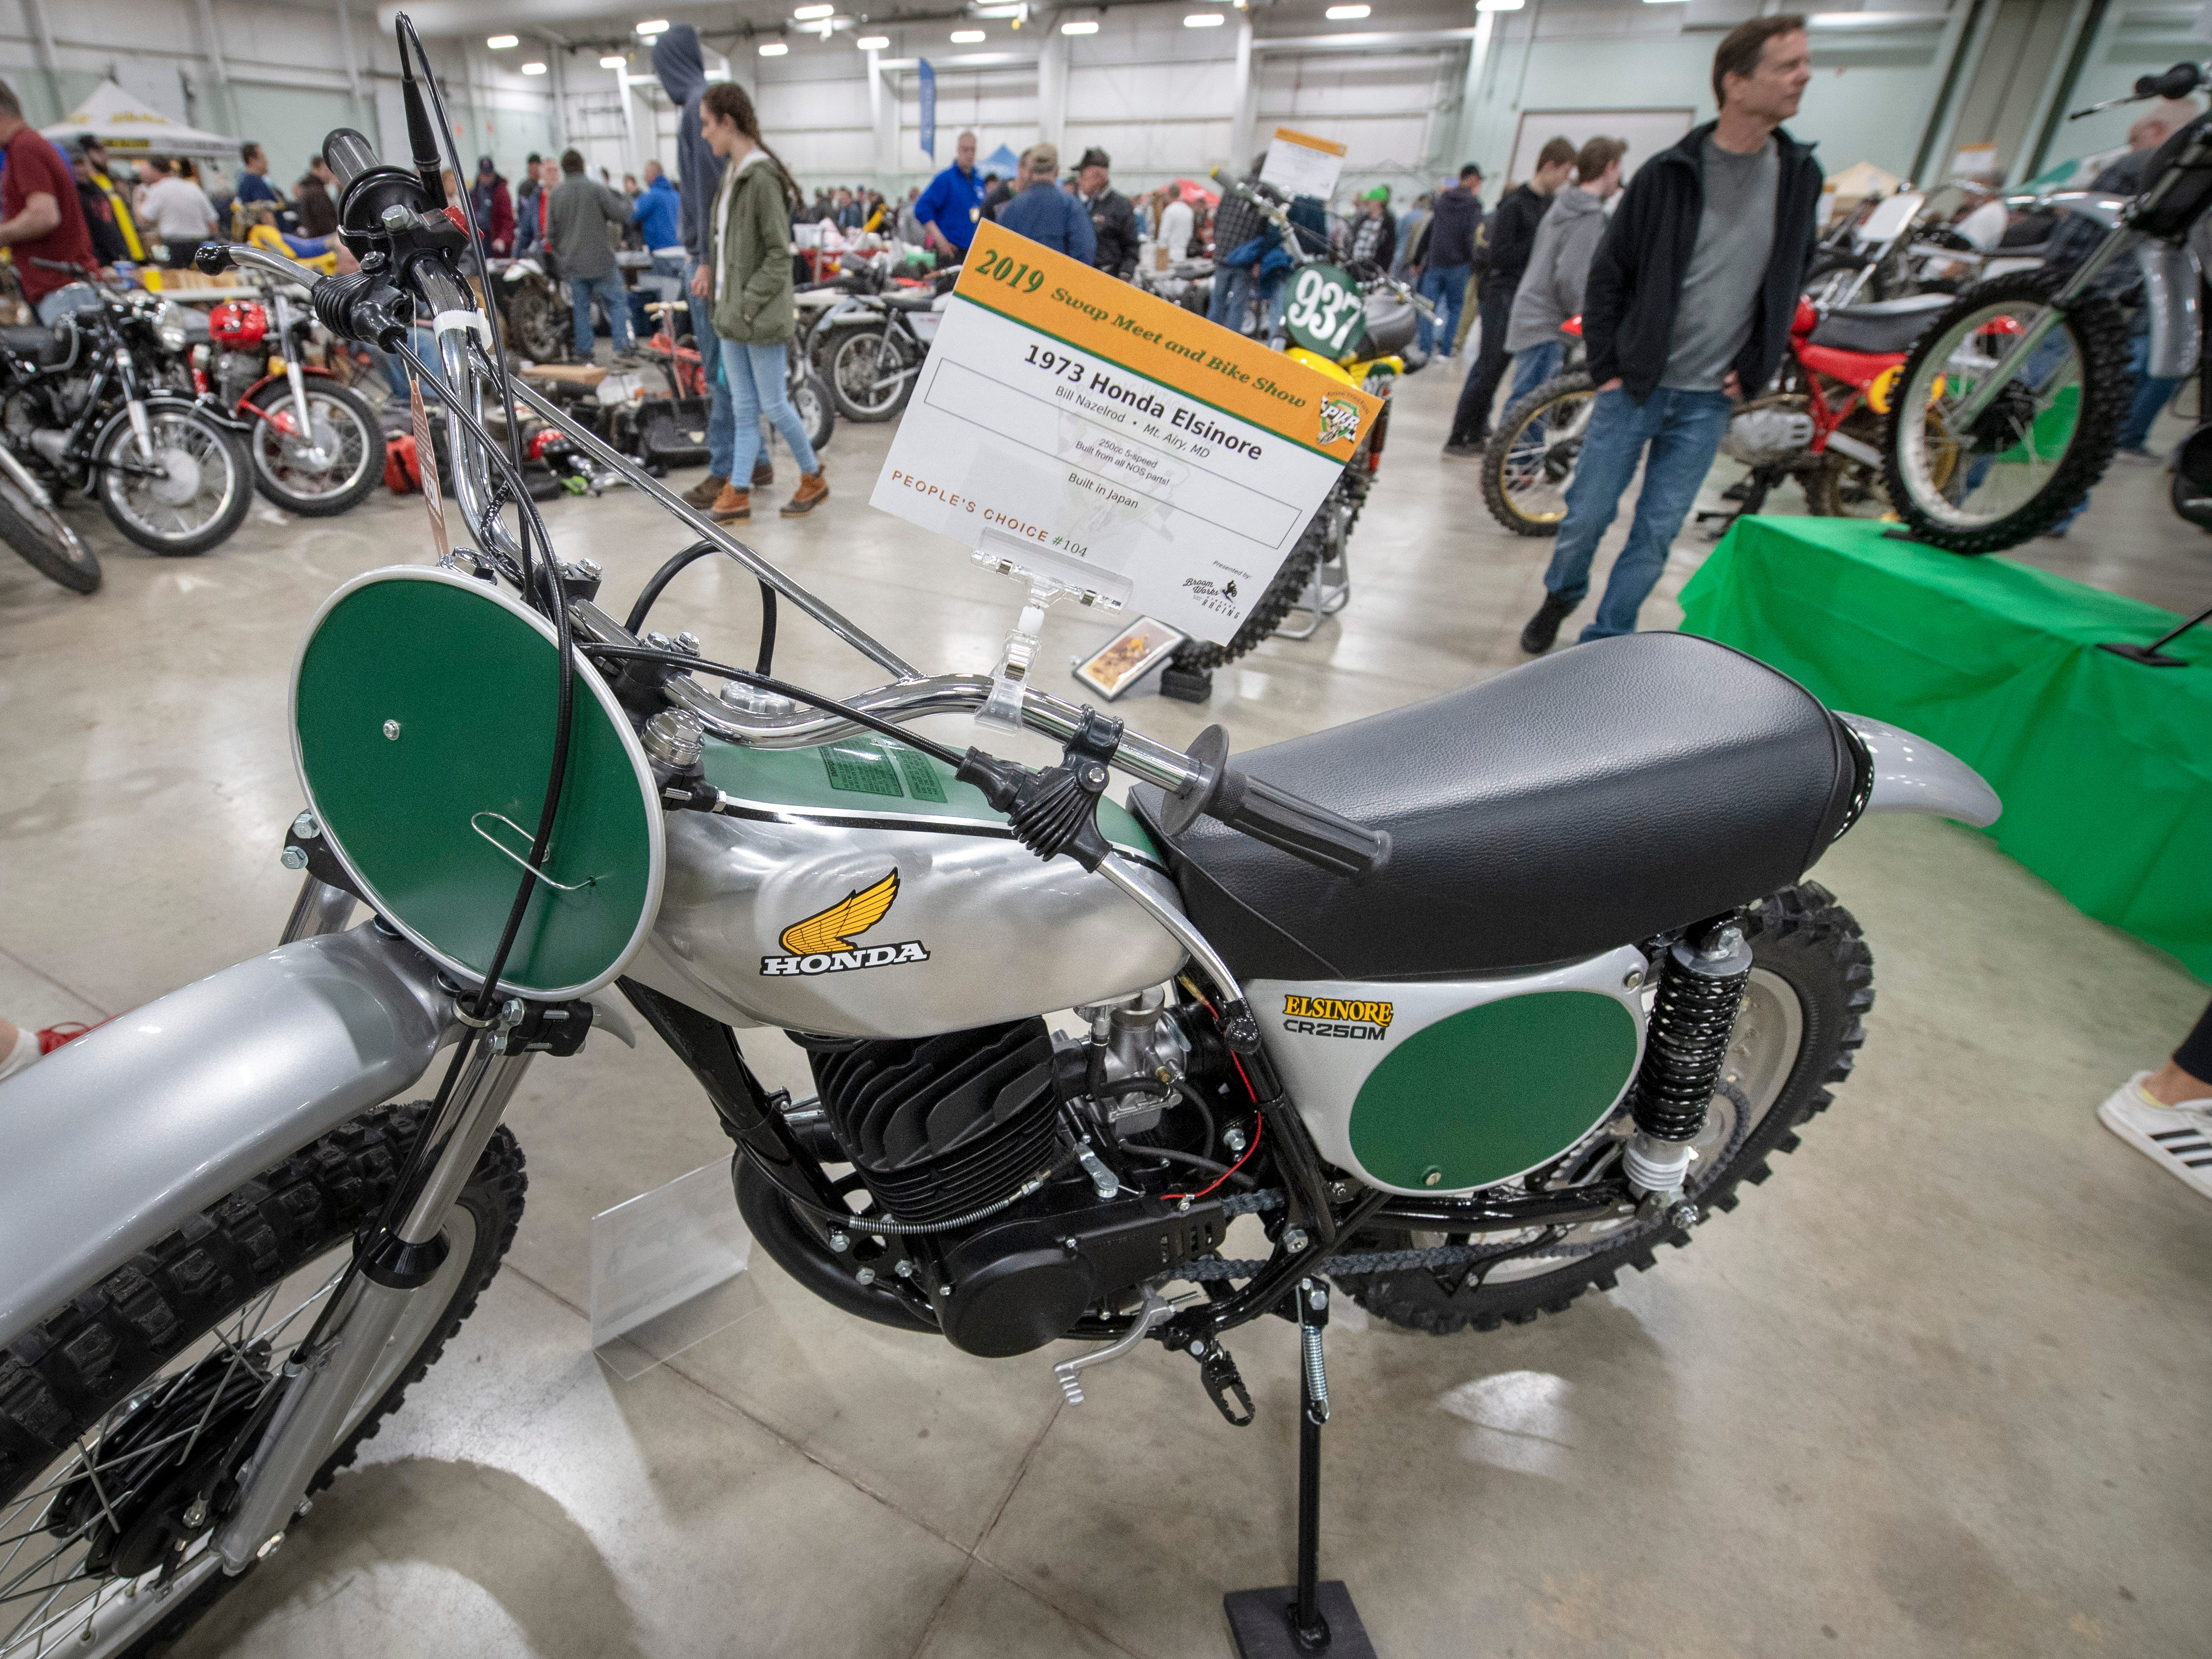 A 1973 Honda Elsinore on display during the The Potomac Vintage Riders' York Swap Meet Sunday January 27, 2019 at the York Expo Center.